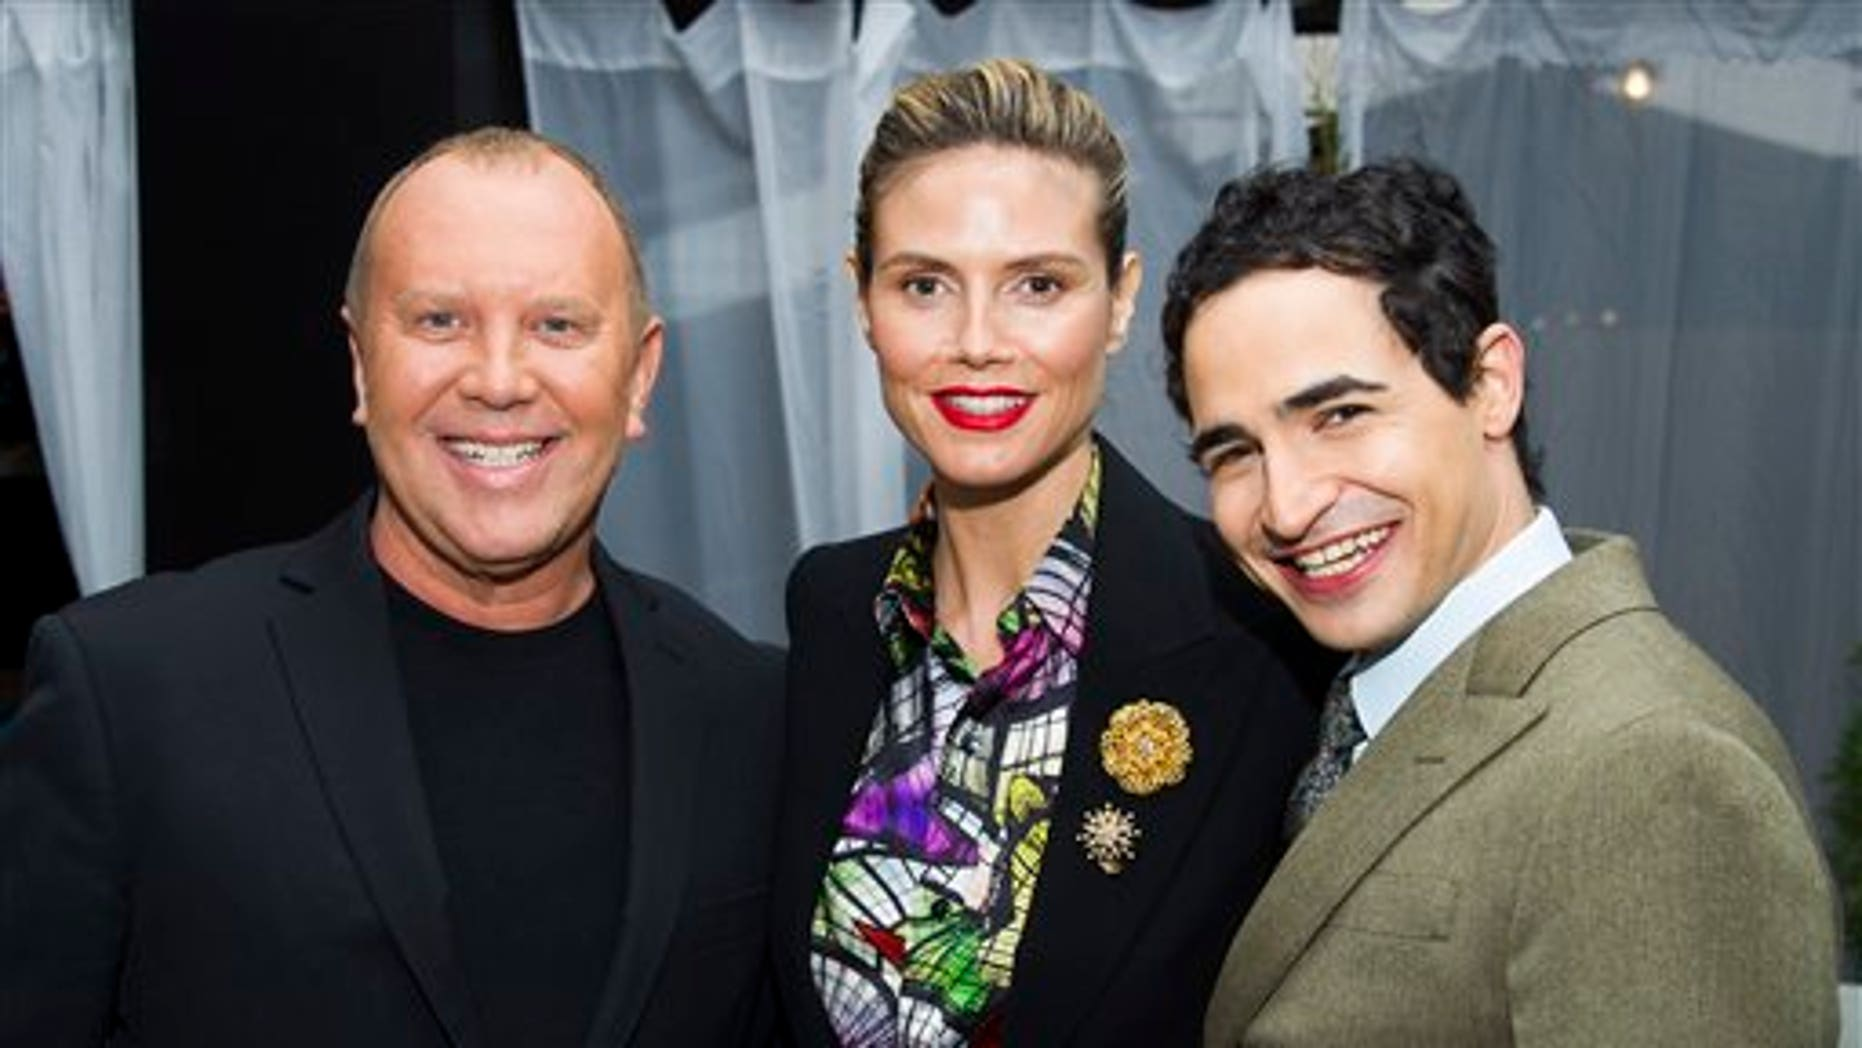 Michael Kors, from left, Heidi Klum and Zac Posen pose before the Fall 2013 Project Runway fashion show on Friday, Feb. 8, 2013 in New York. (Photo by Charles Sykes/Invision/AP)